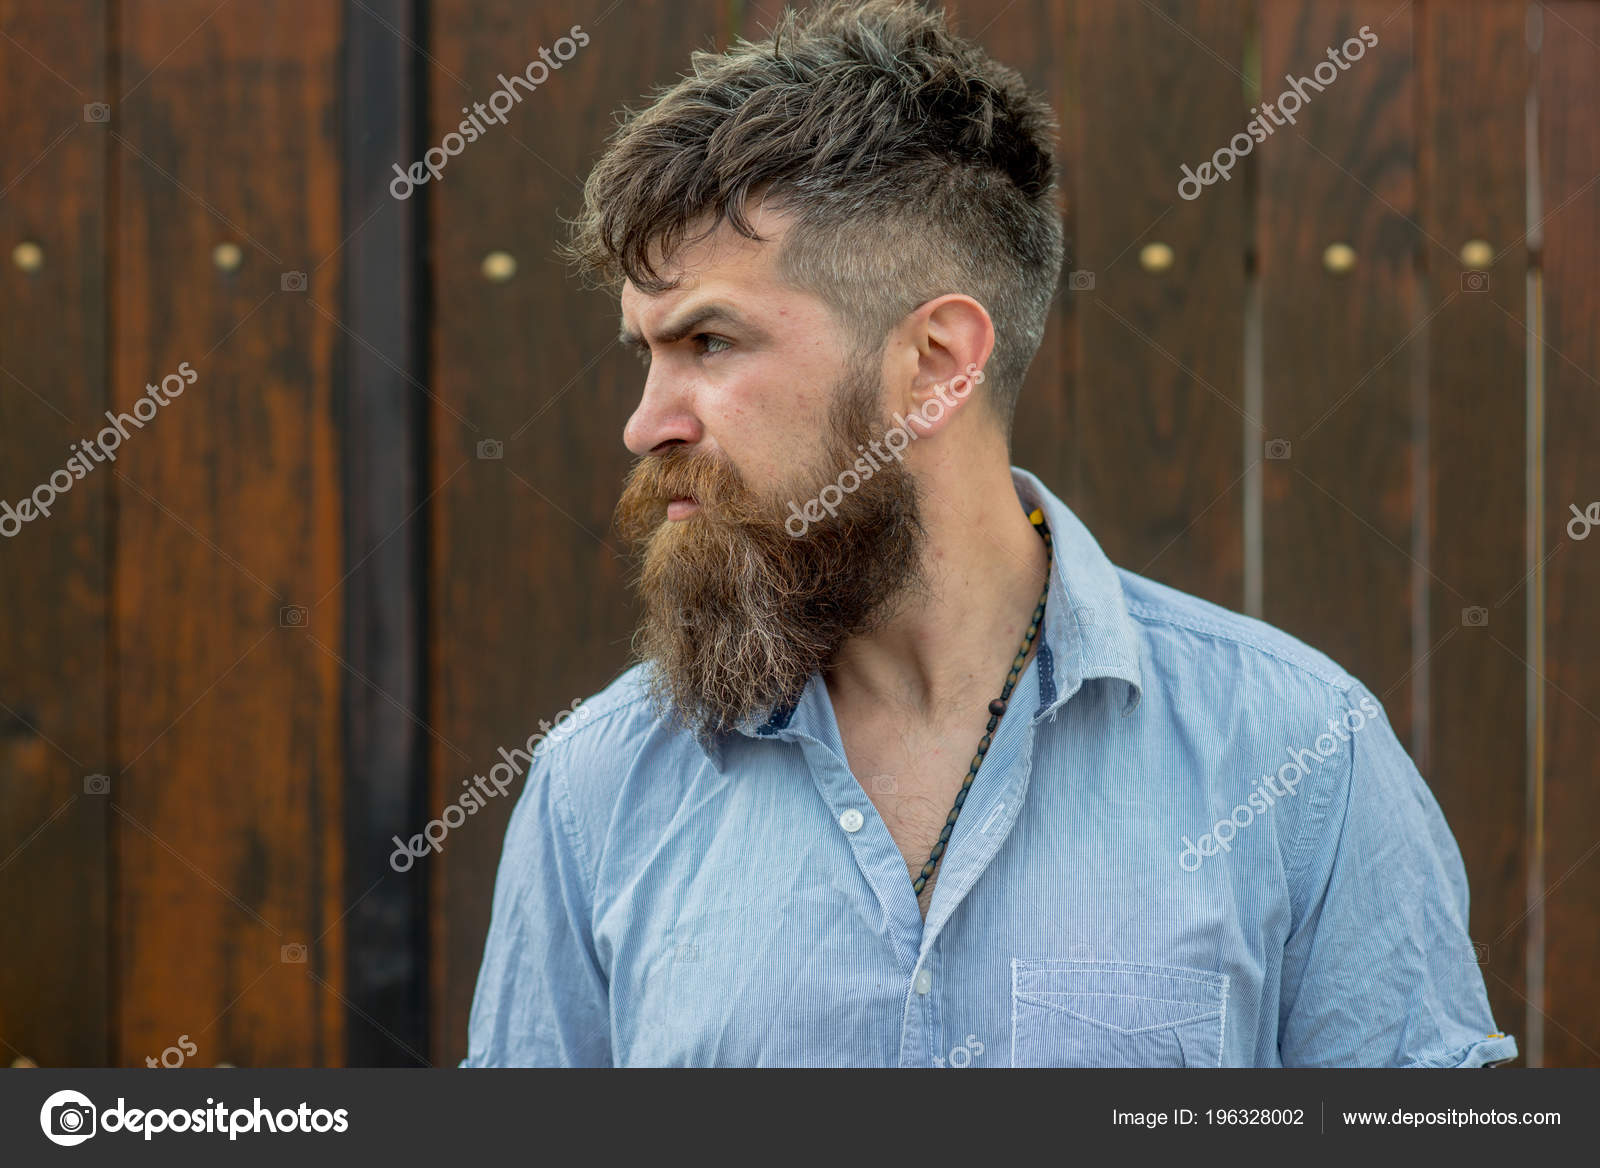 Bearded Man Brutal Face Side View Hipster Trendy Hairstyle Beard